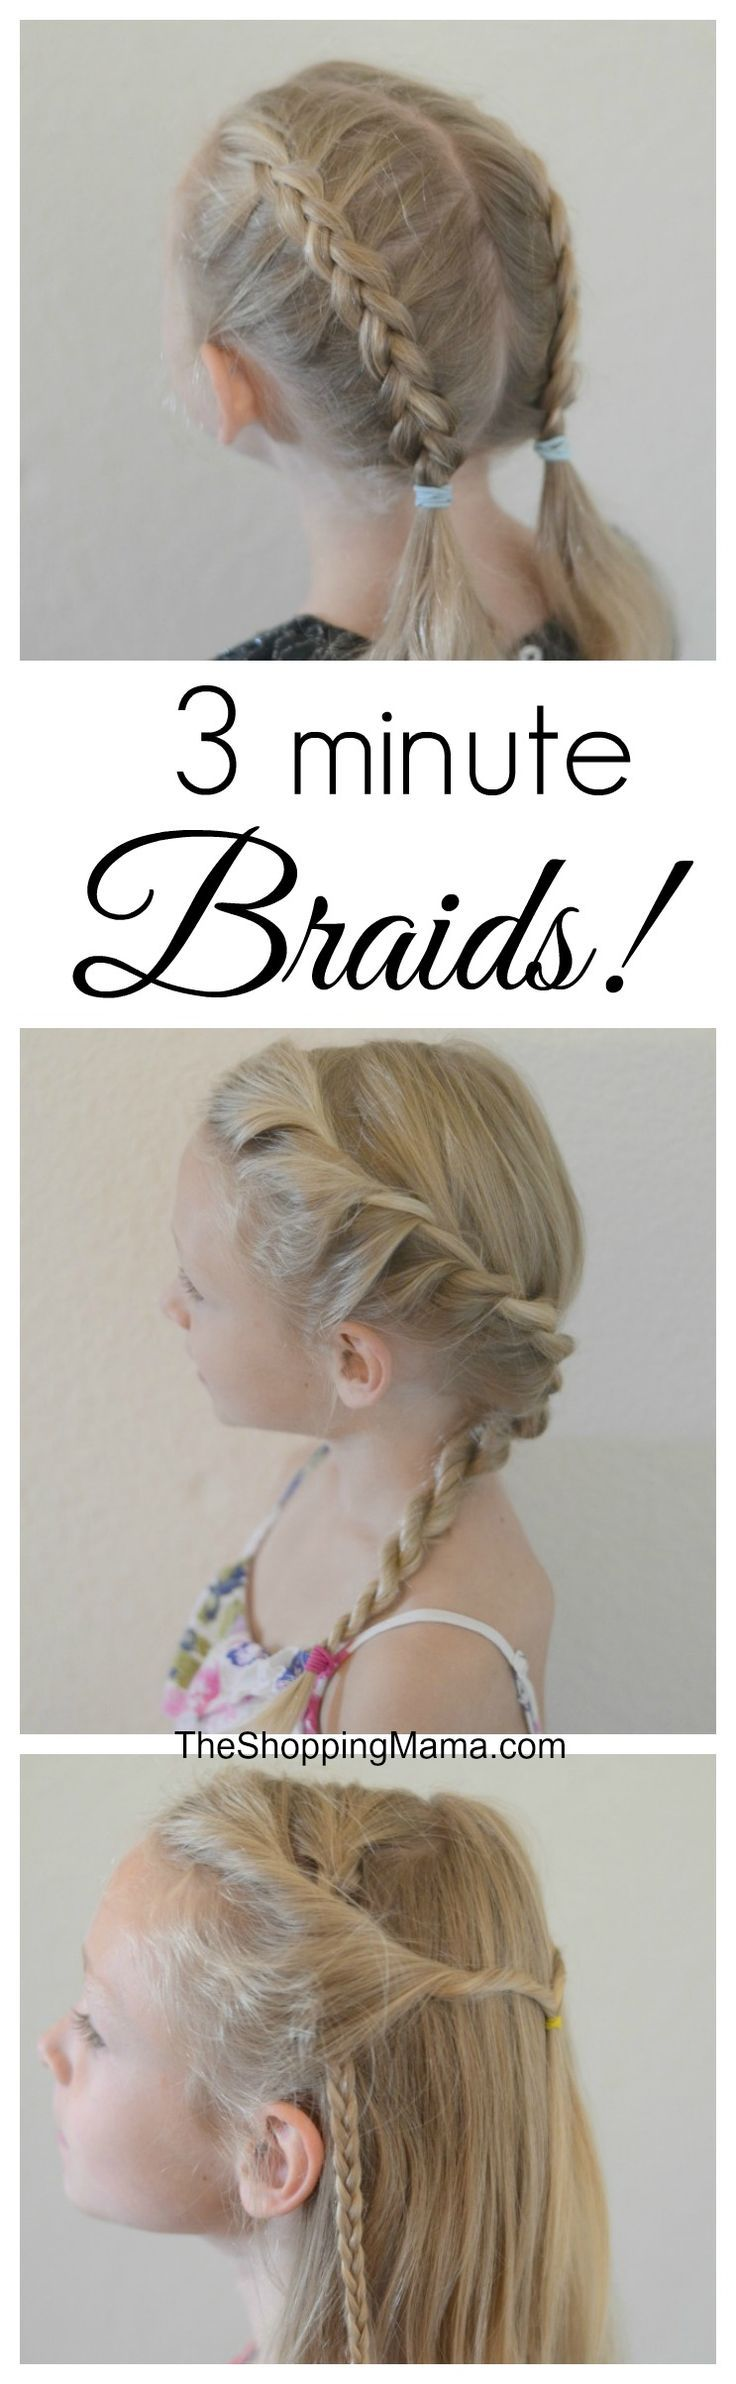 3 minute cute and easy braids for girls.